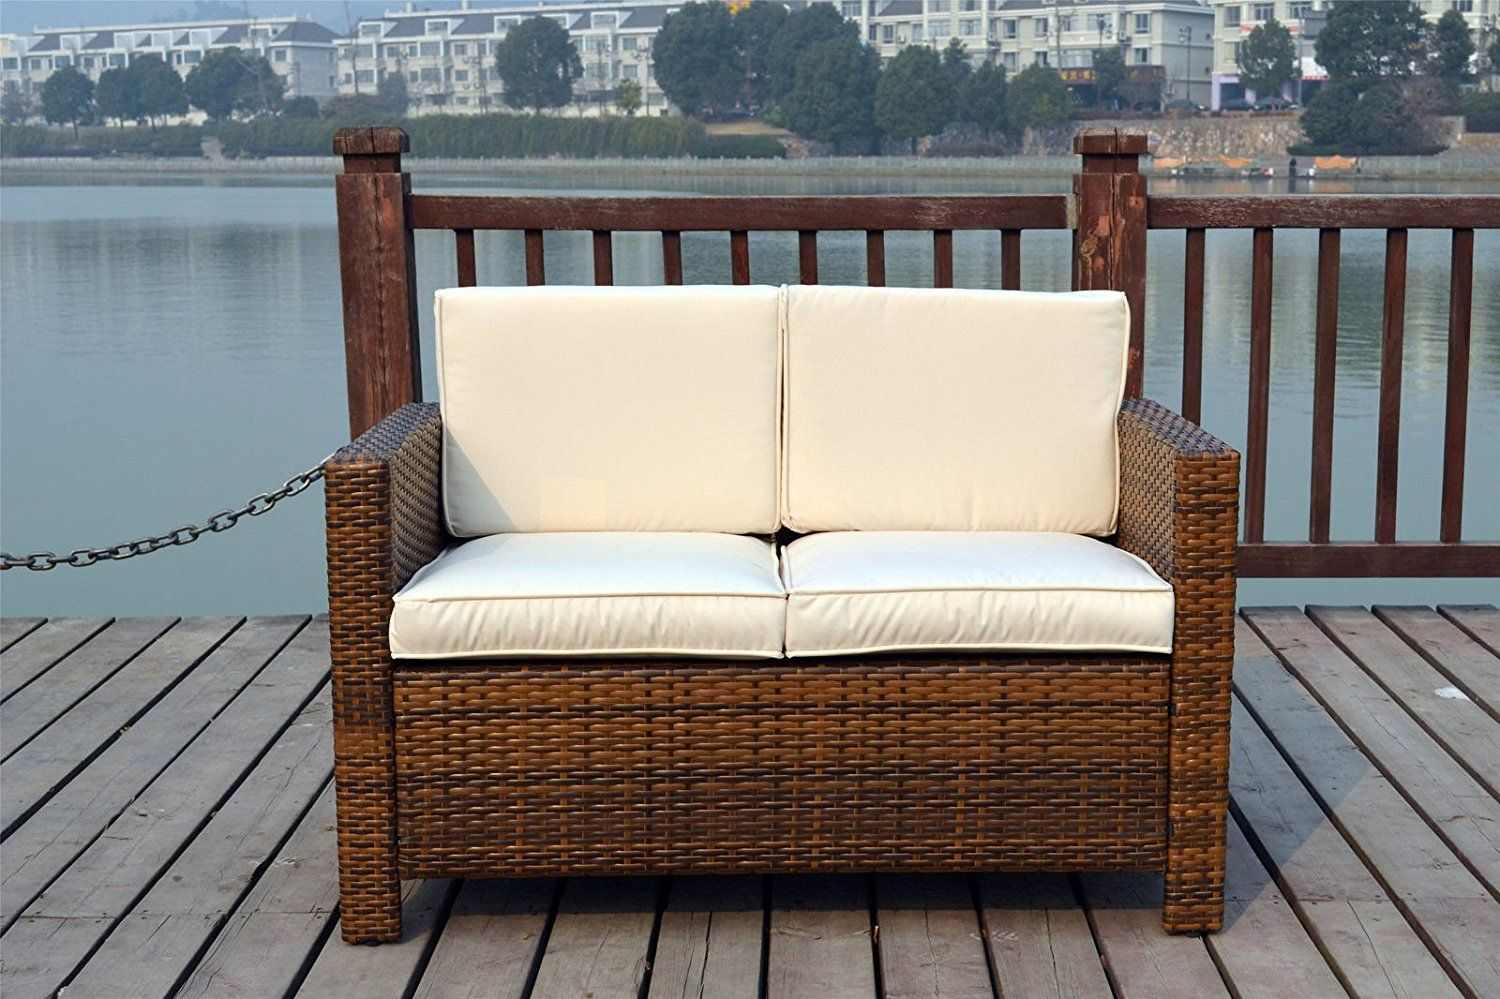 Rattan Twin Sofa New Twin Rattan Wicker Conservatory Outdoor Garden Furniture Set